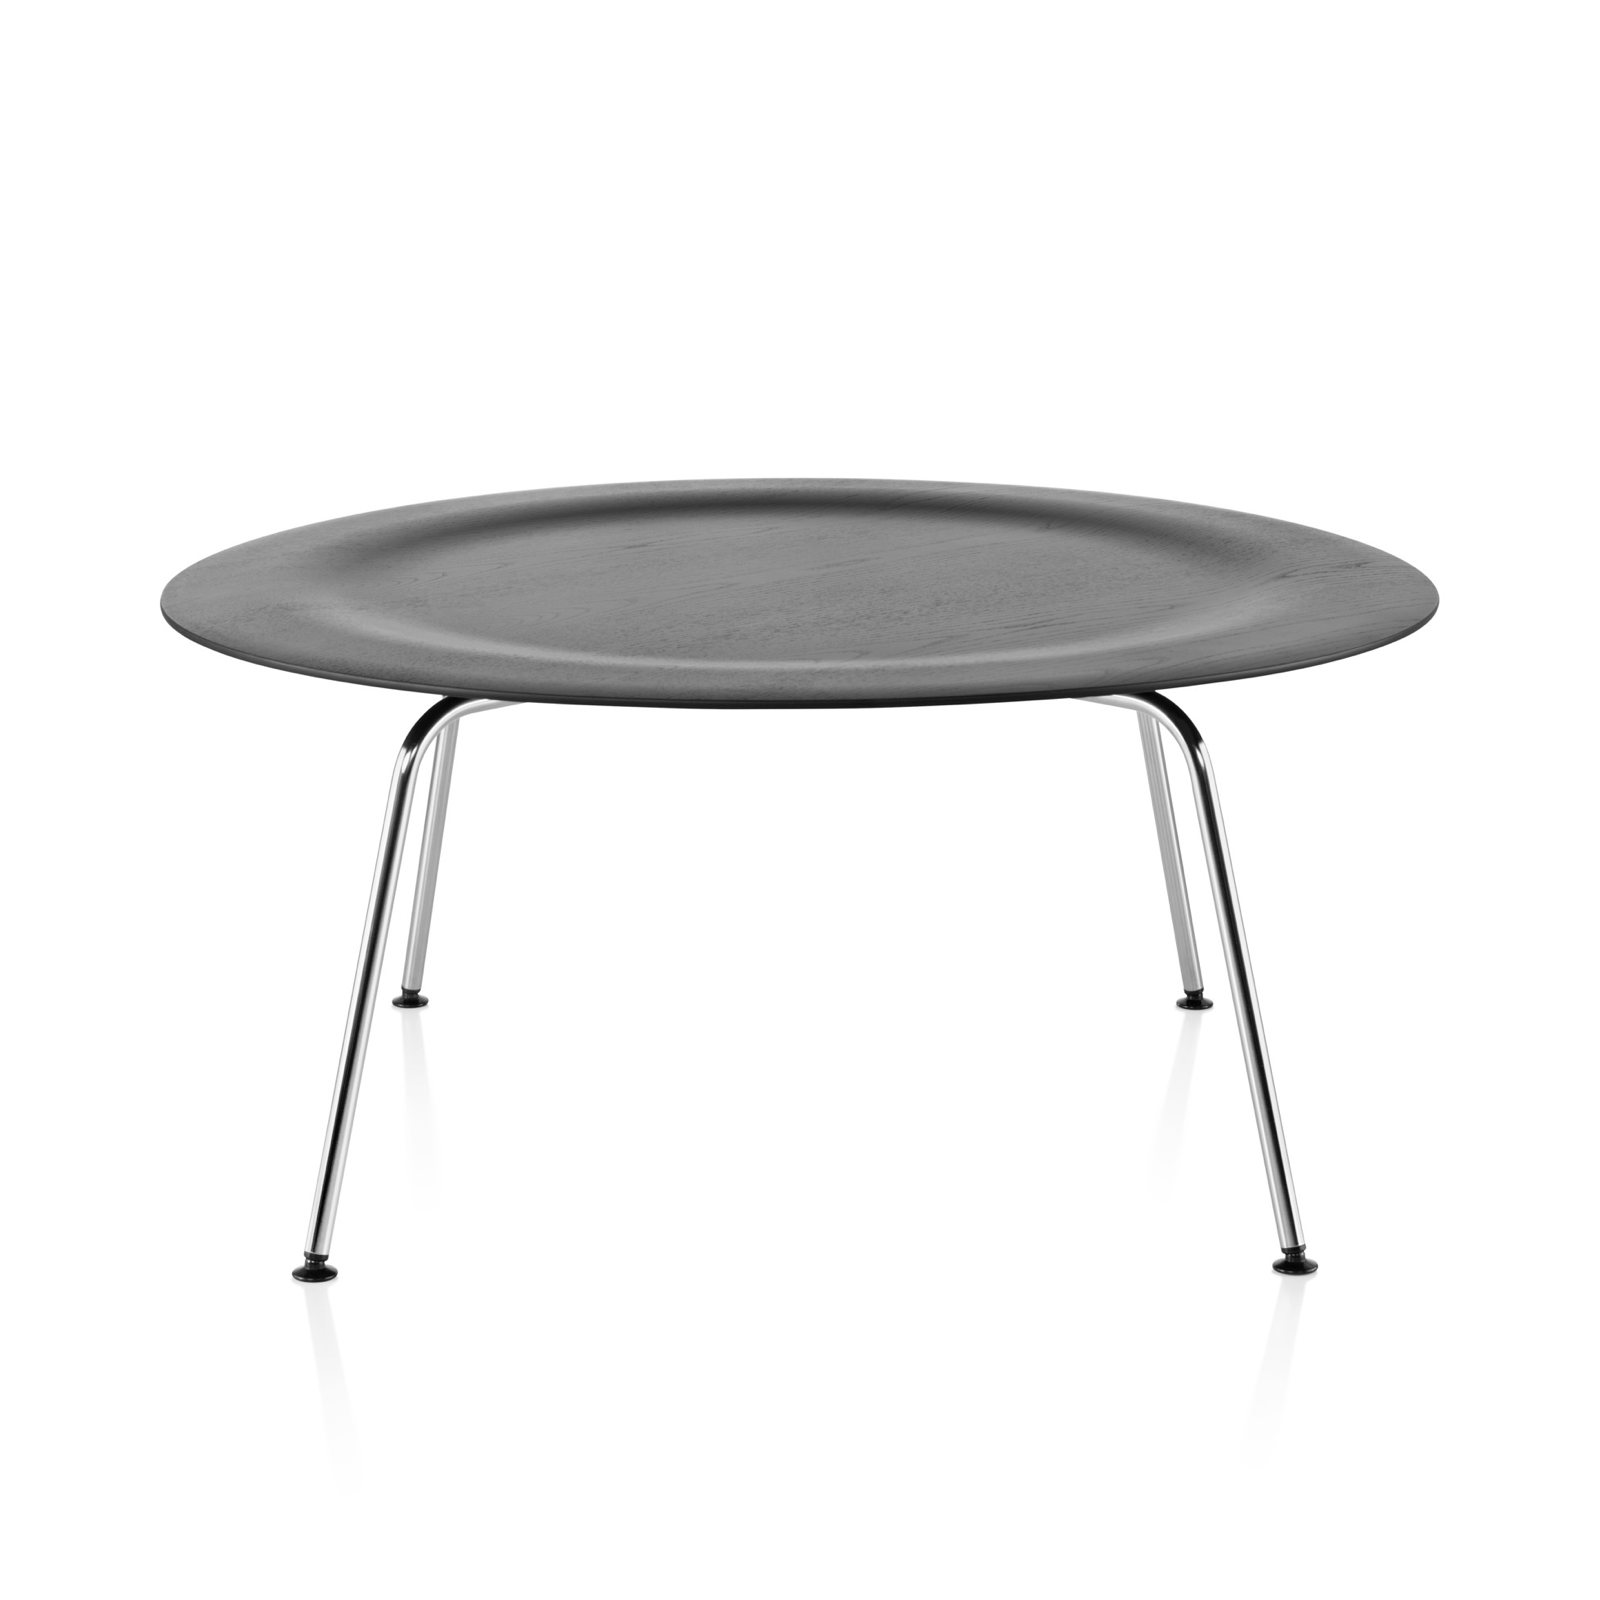 Eames Molded Plywood Coffee Table Metal Base By Charles Ray For Herman Miller